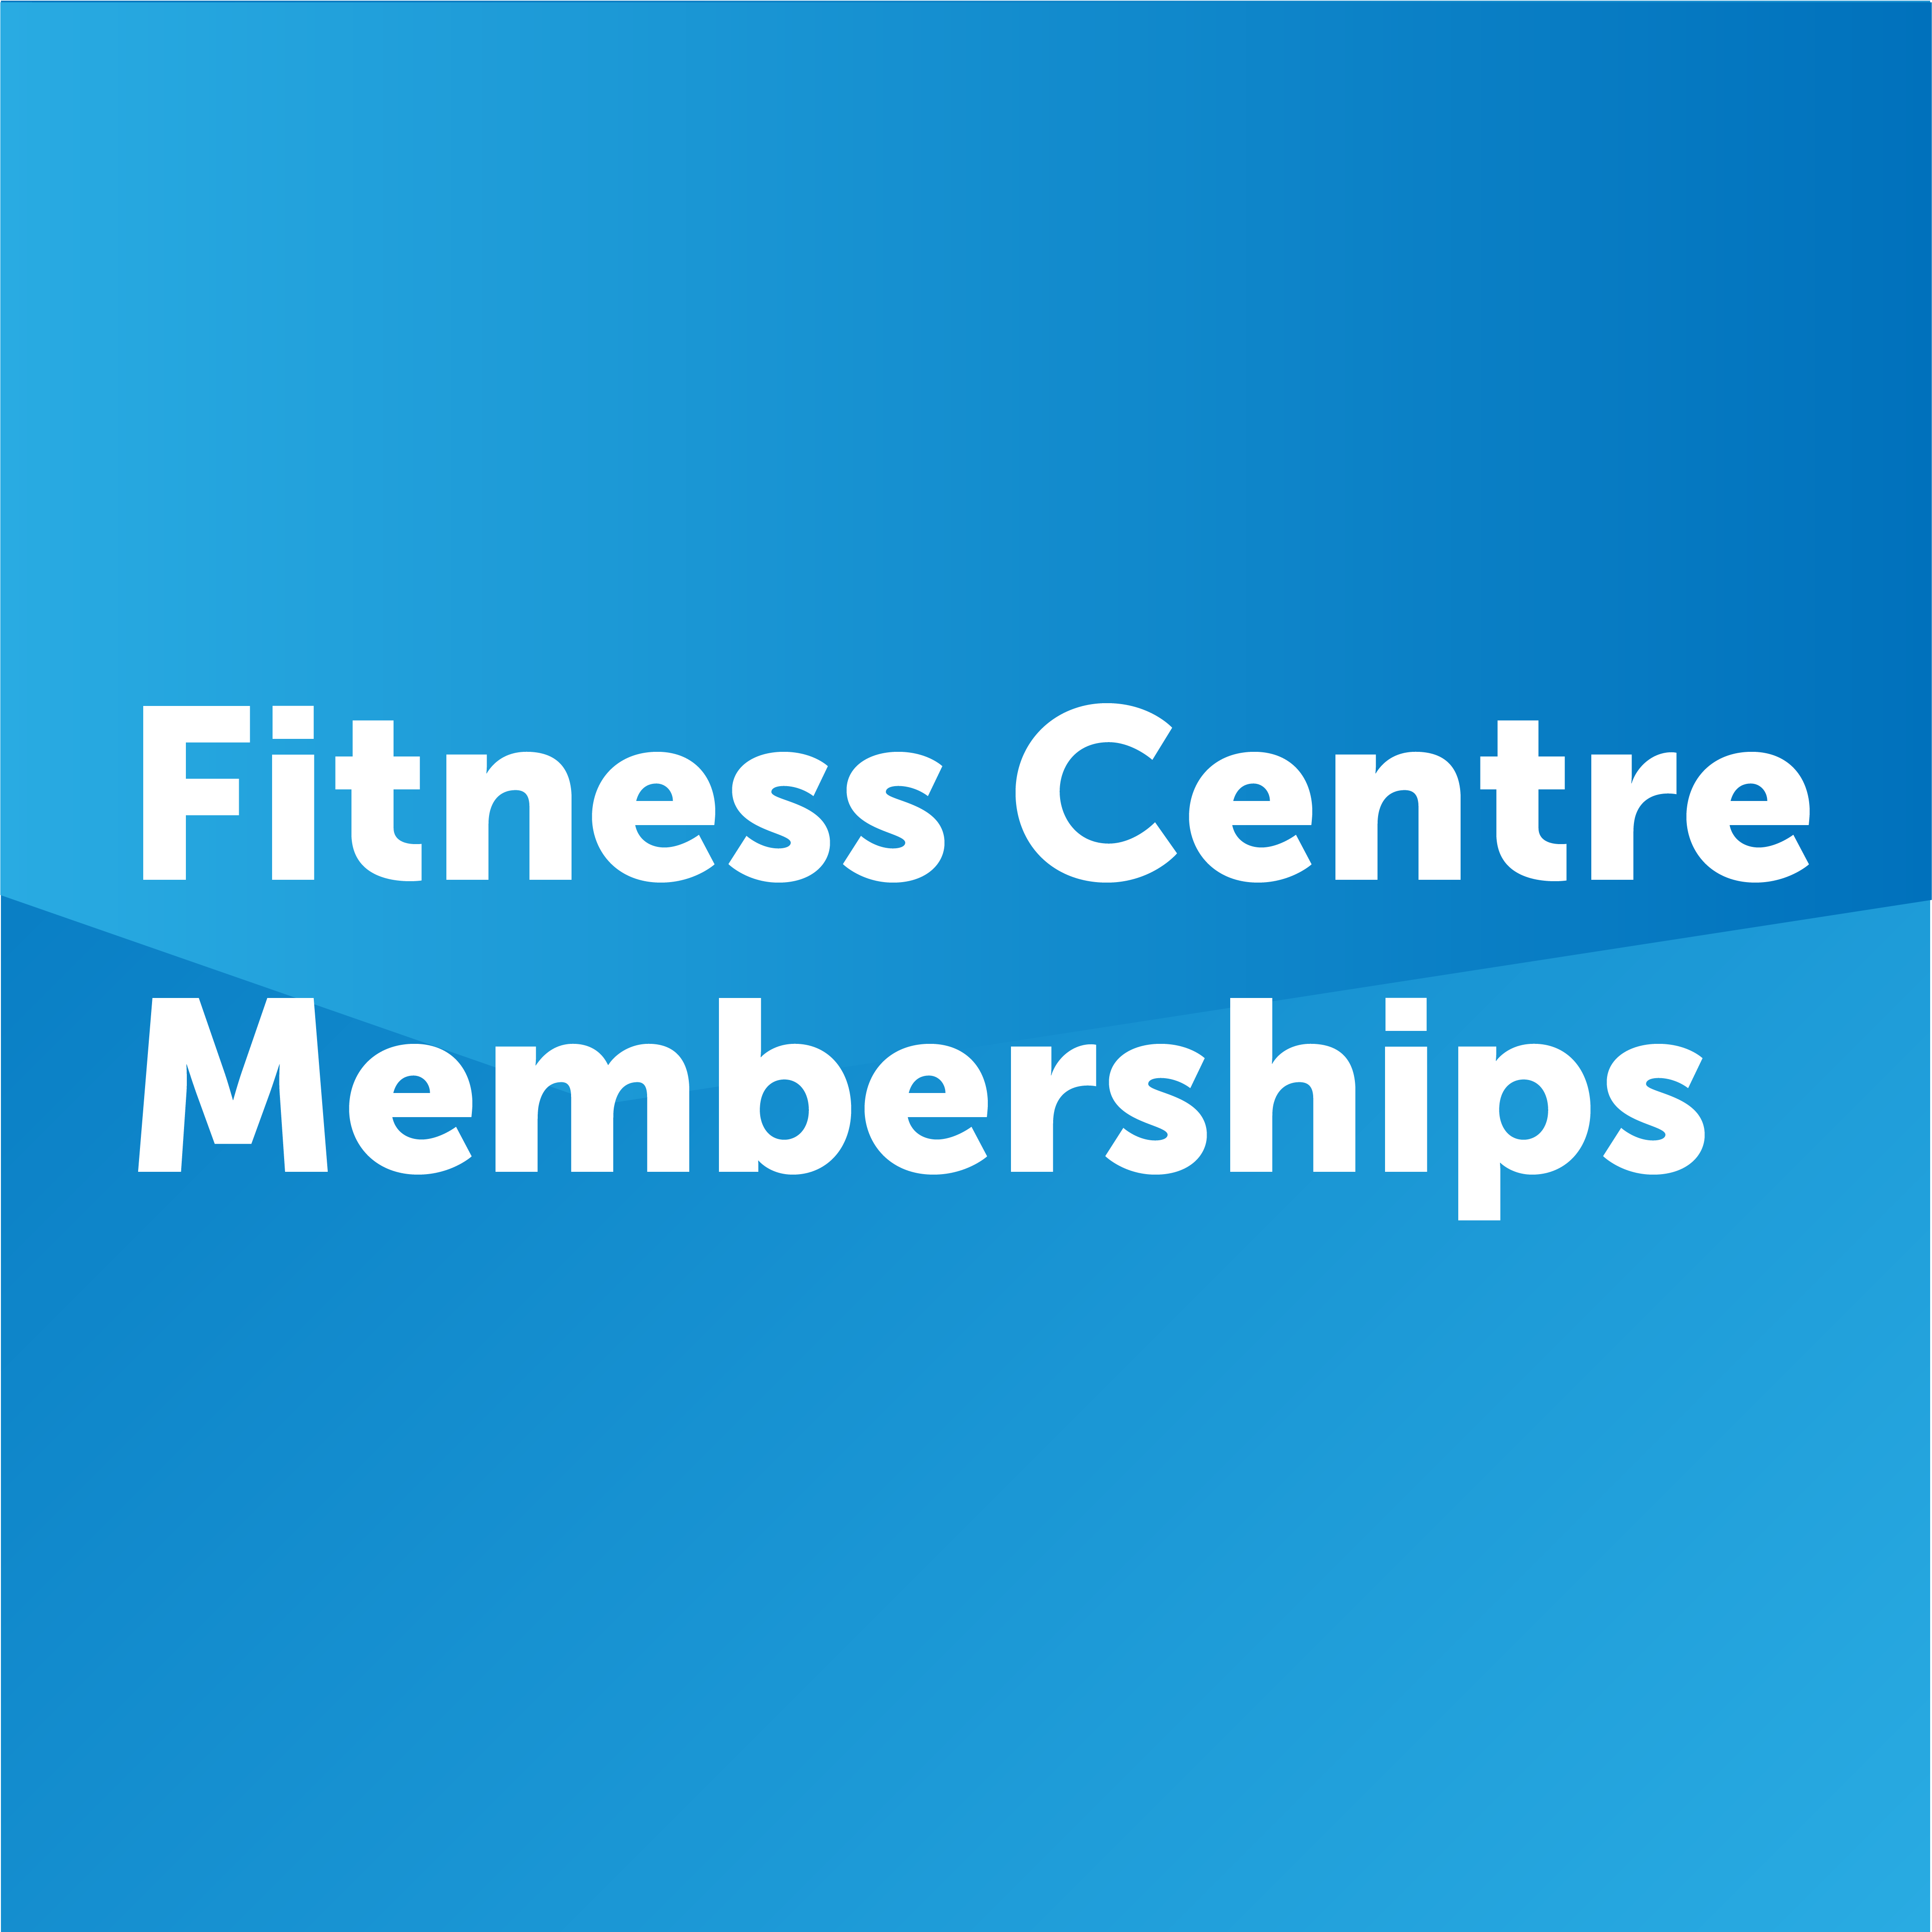 fitness centre memberships button